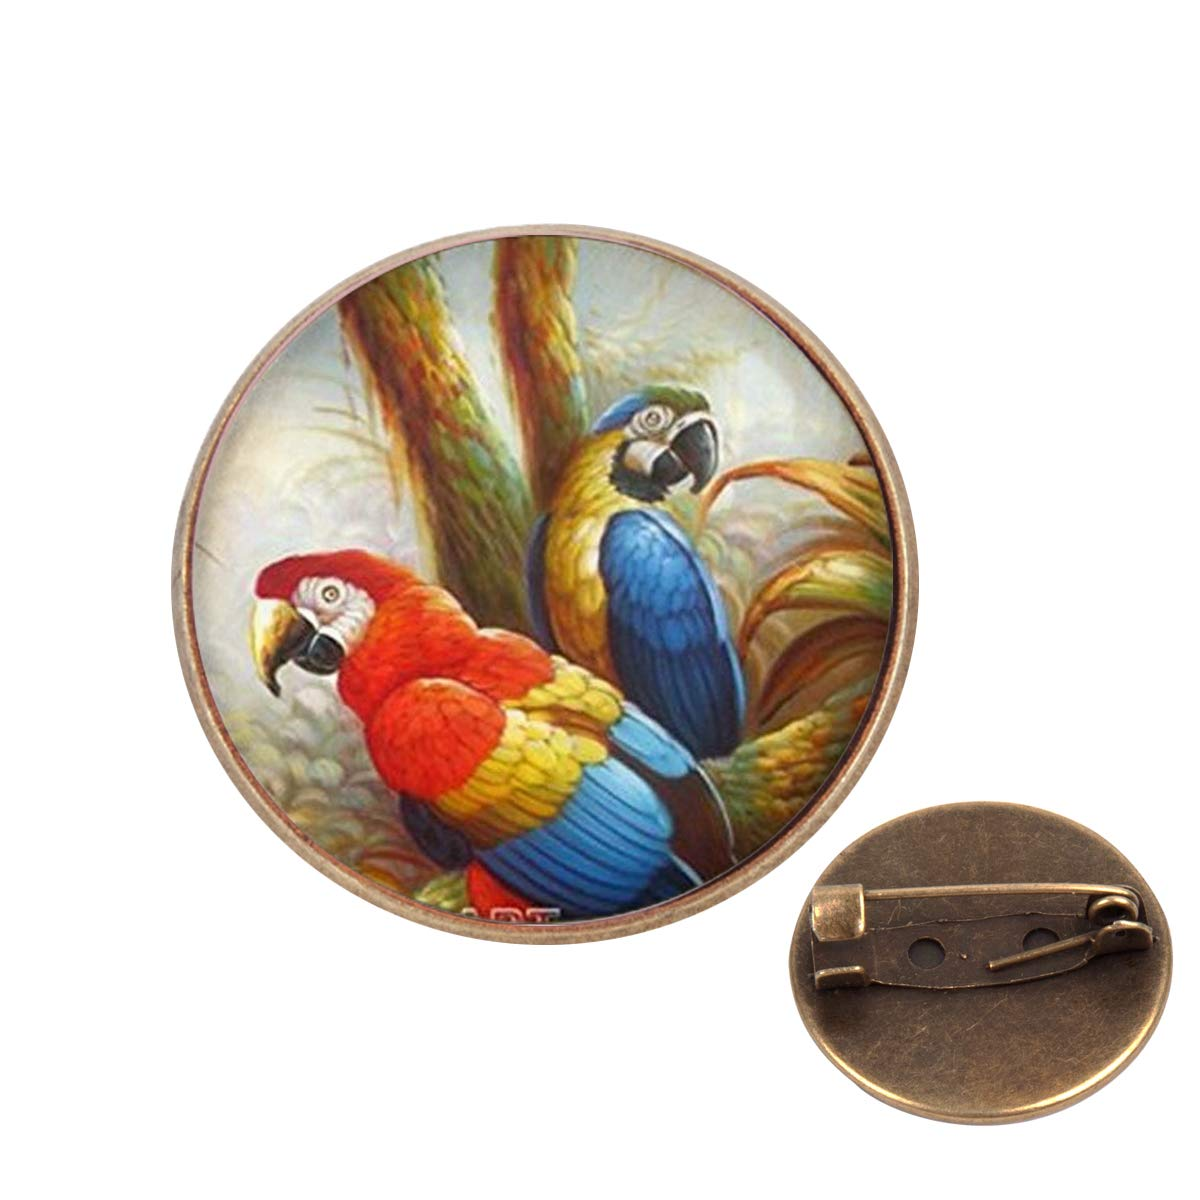 Pinback Buttons Badges Pins Parrot Bird Animal Lover Lapel Pin Brooch Clip Trendy Accessory Jacket T-Shirt Bag Hat Shoe